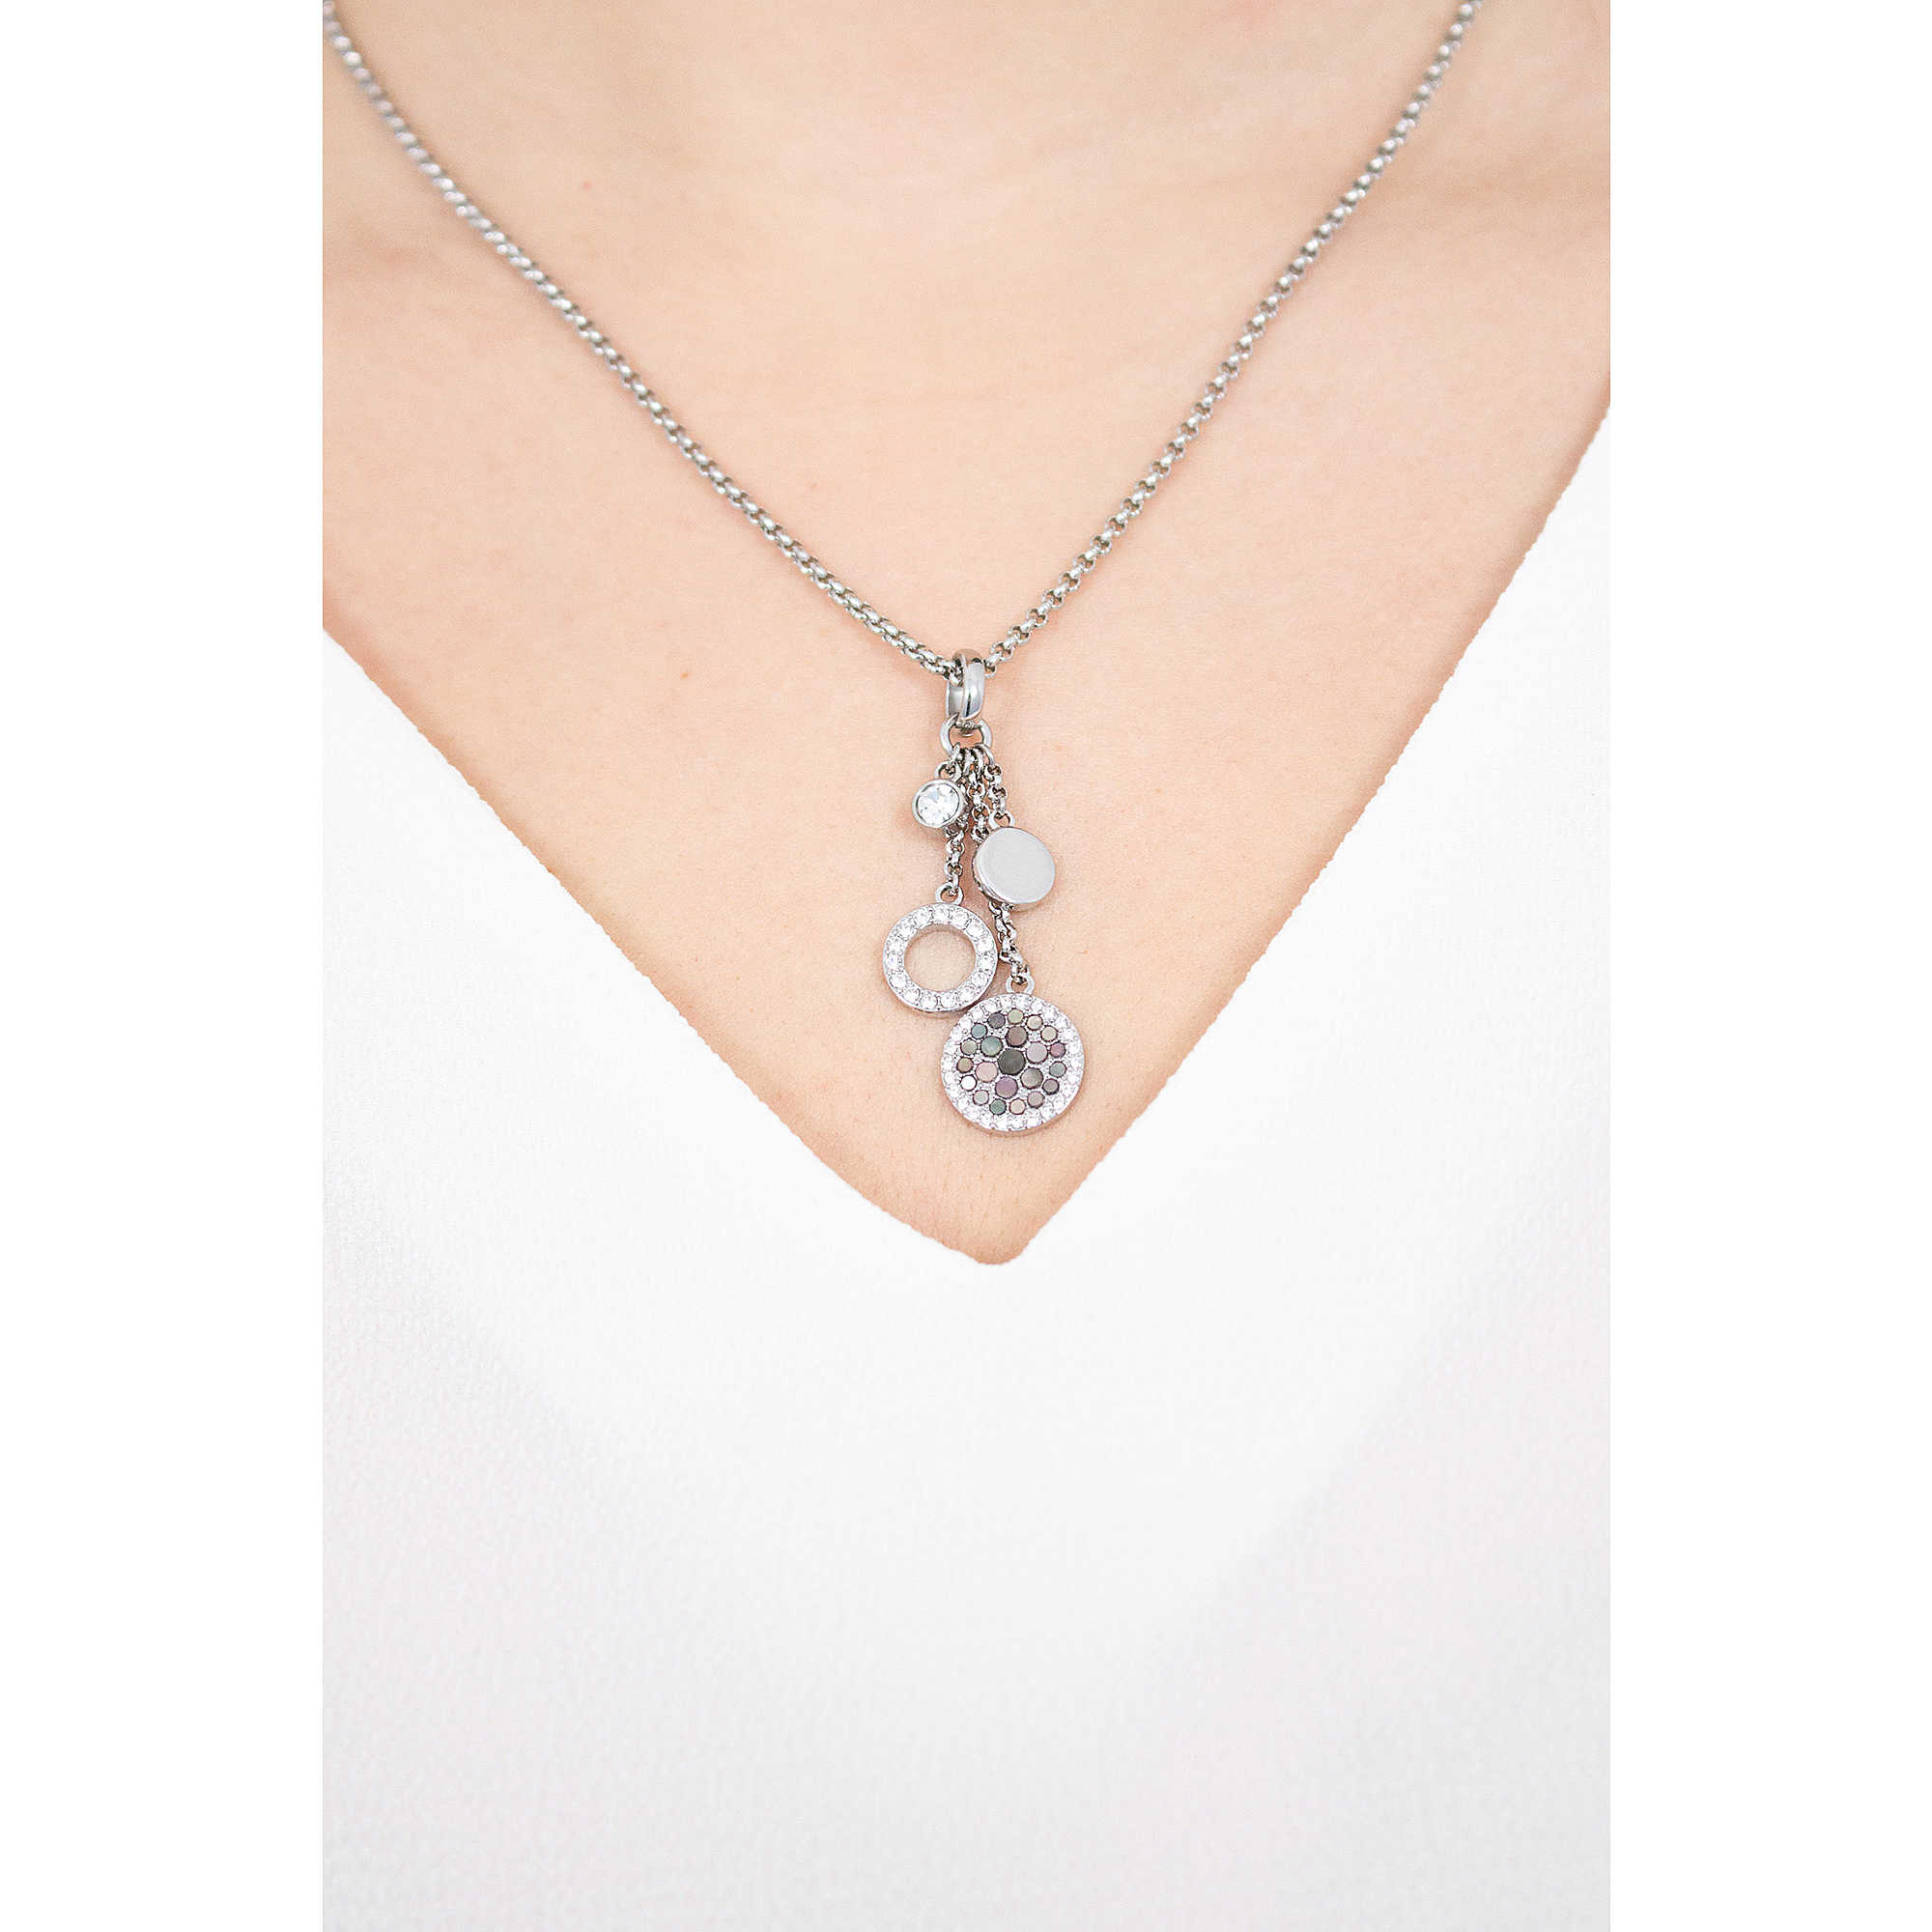 Fossil Women Stainless Steel Pendant Necklace - JF02819040 NV0JGmFTst